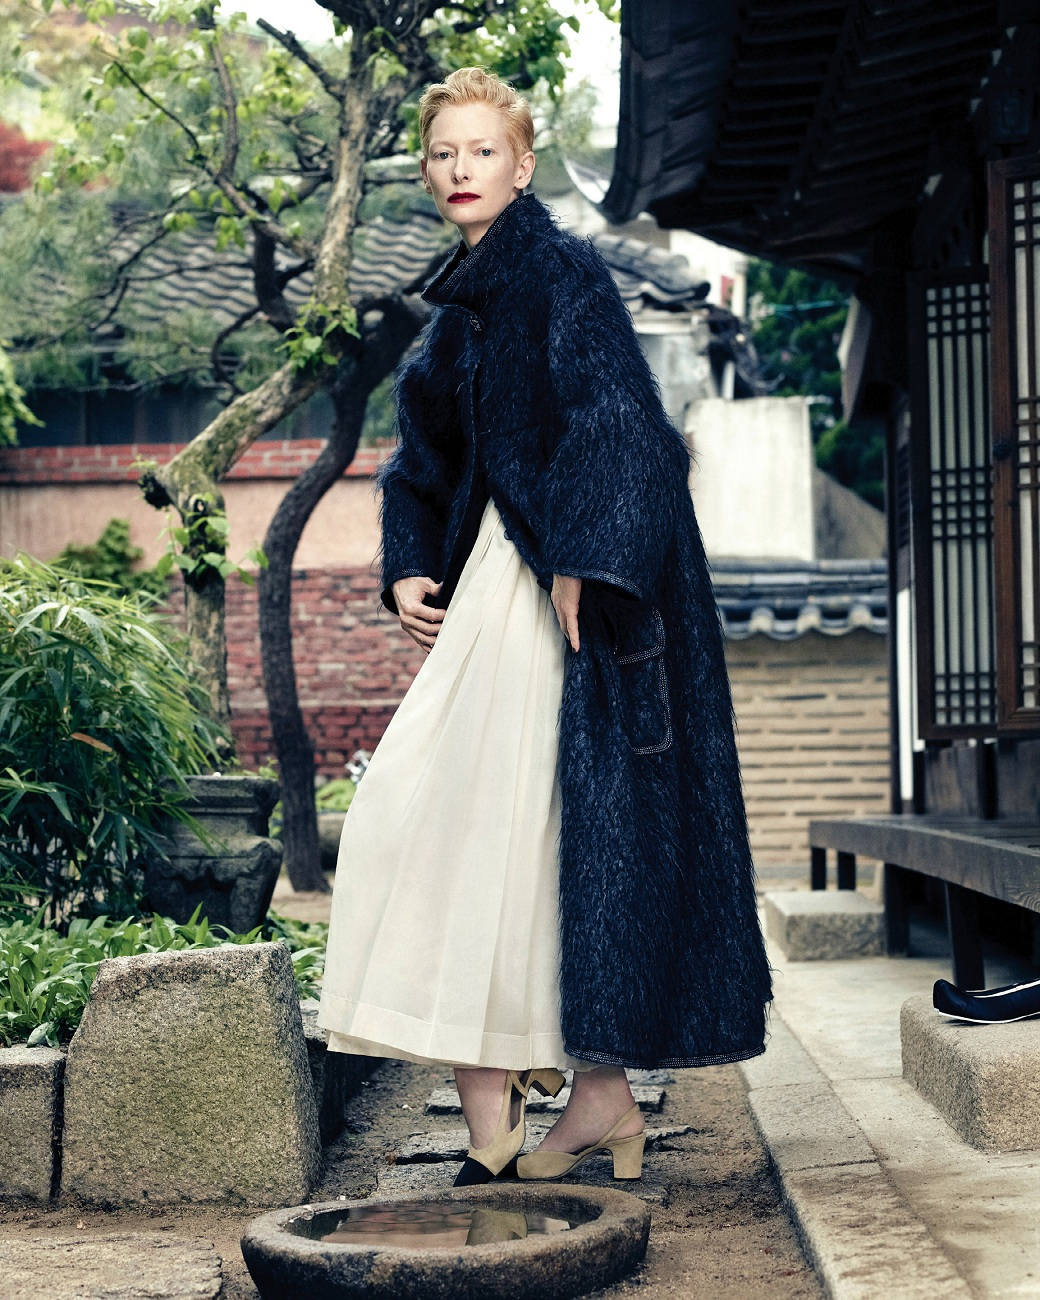 tilda-swinton-by-hong-jang-hyun-vogue-korea-august-2015-02